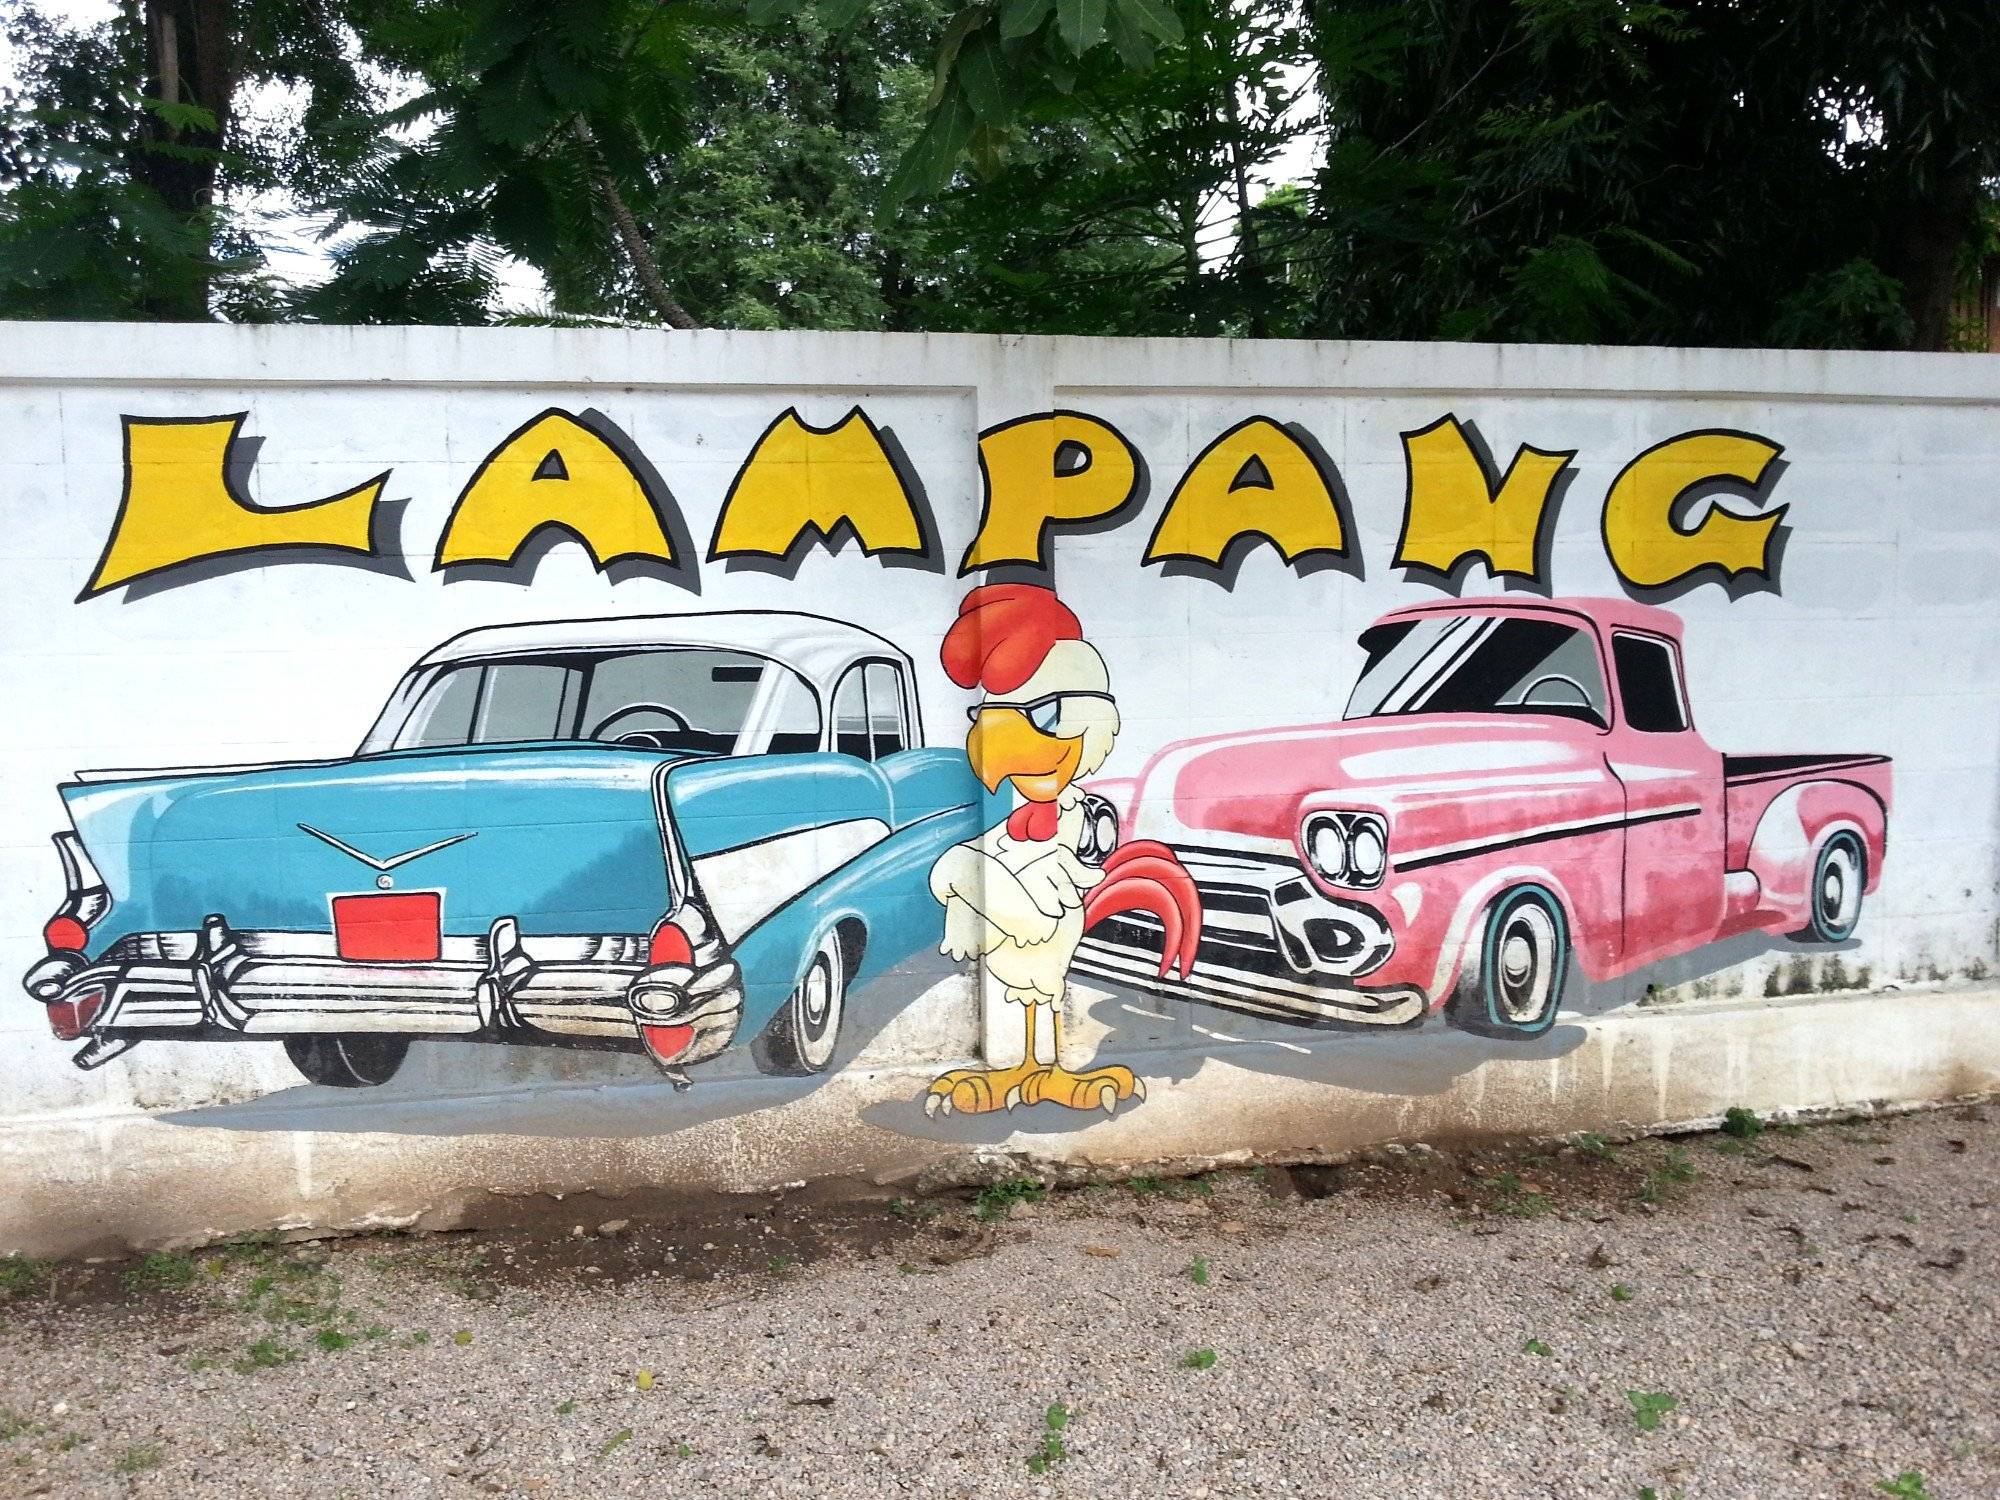 Car owning rooster mural in Lampang